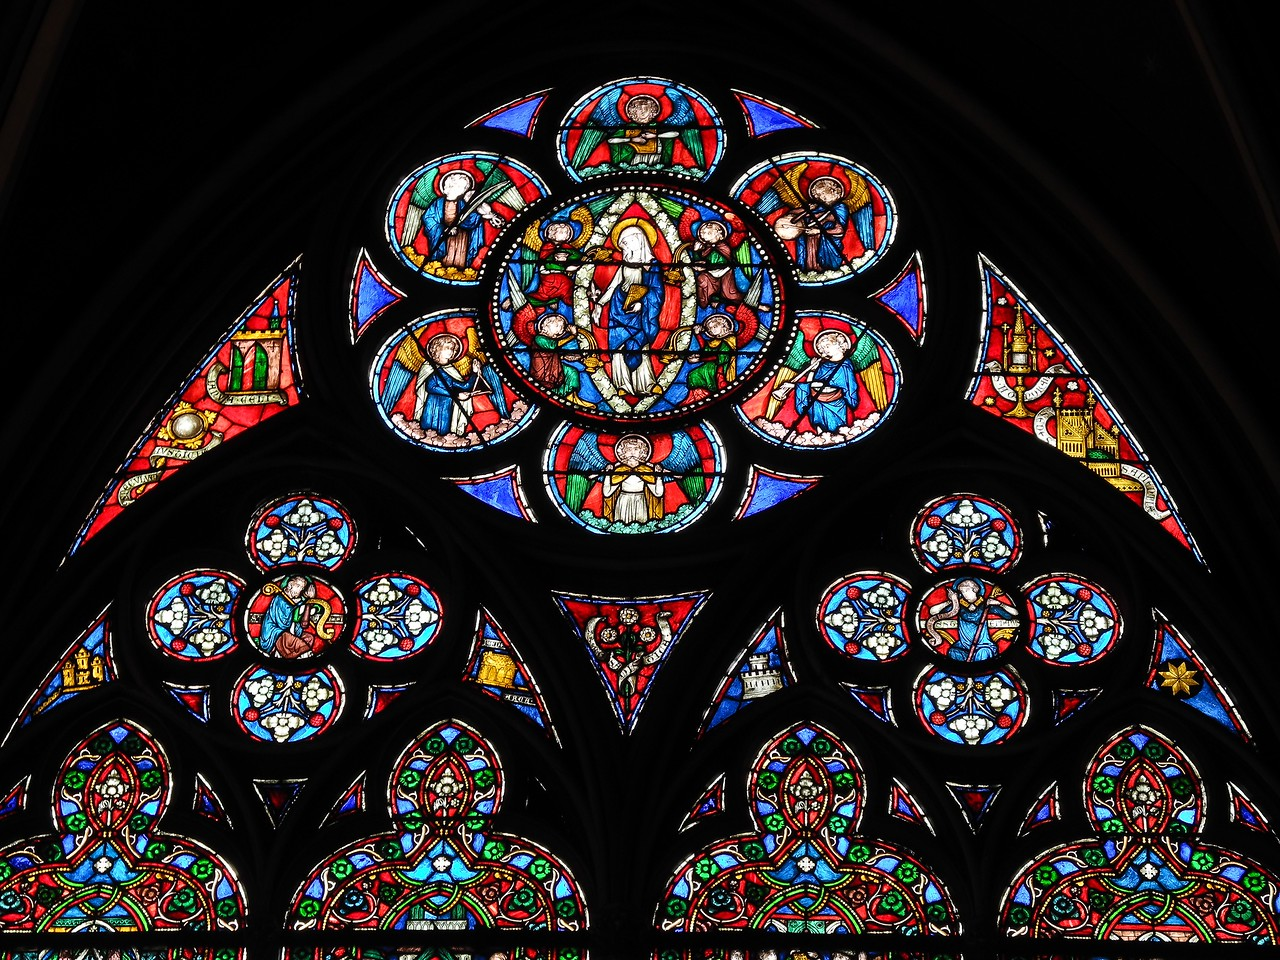 ND23: The stained glass inside the cathedral takes my breath away with its beauty. All the small areas telling holy stories.